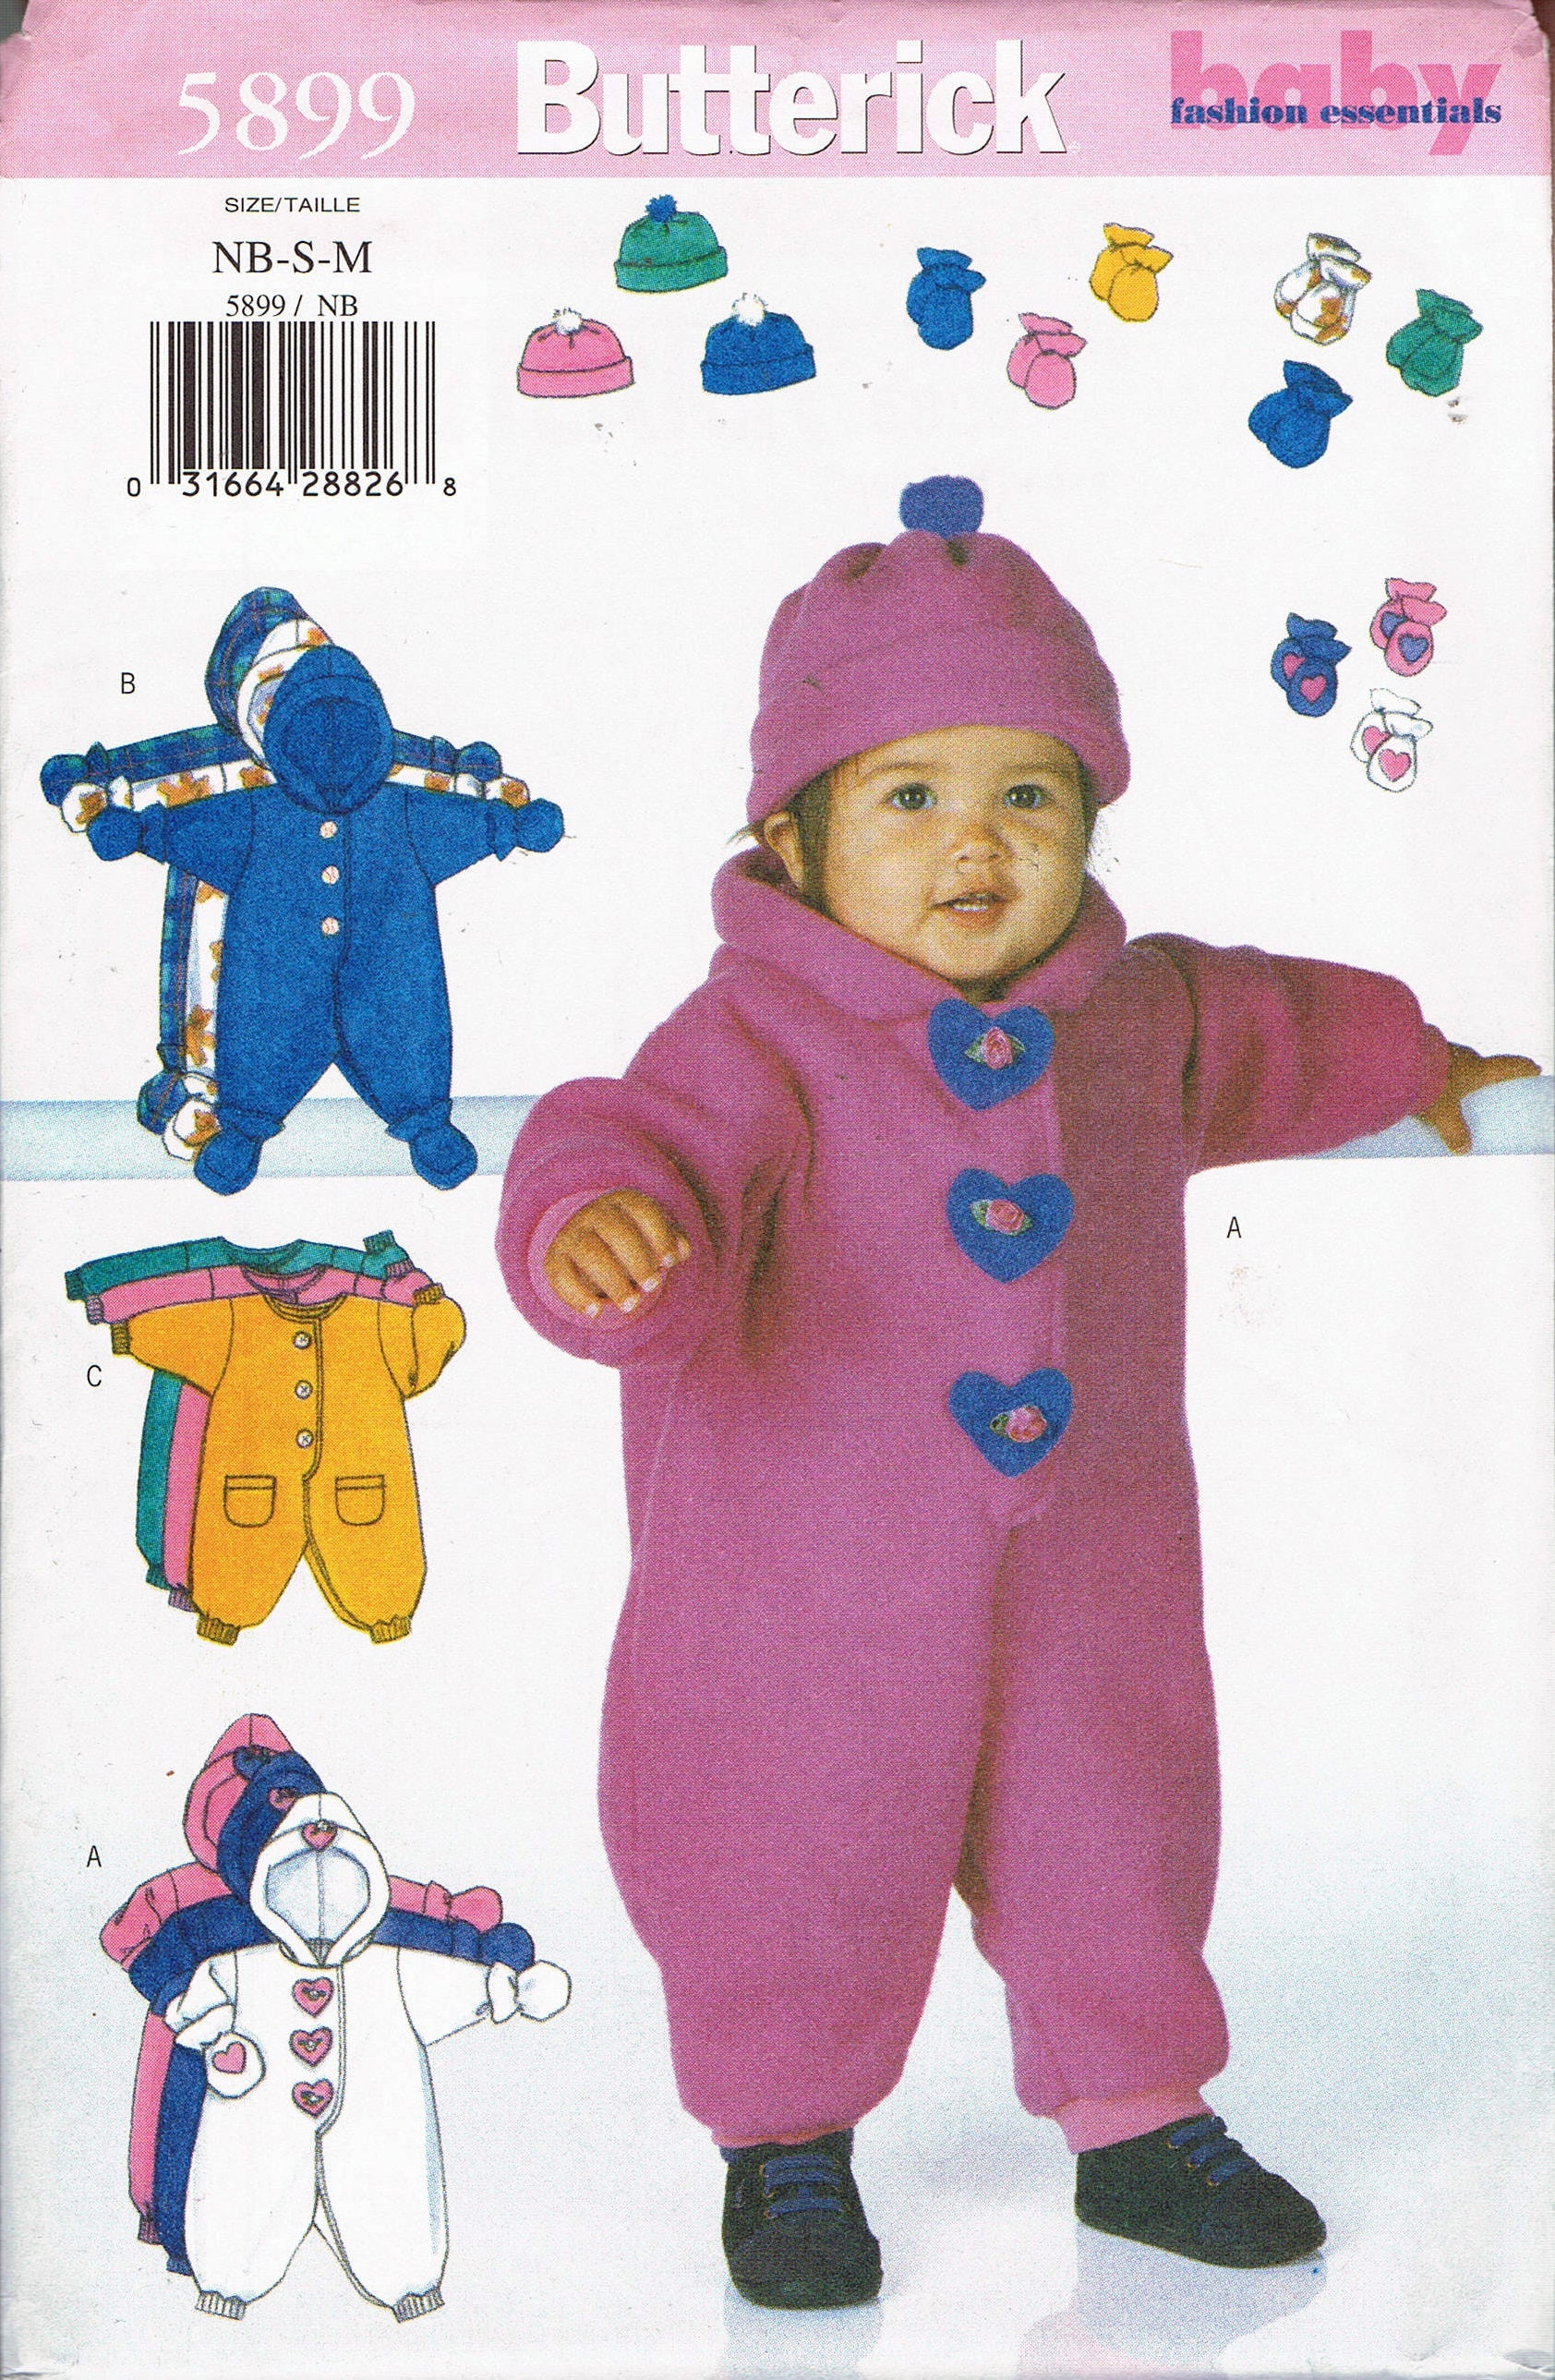 Infants nb med fleece onsie sewing pattern baby bunting pattern sold by busybeaverboutique jeuxipadfo Image collections